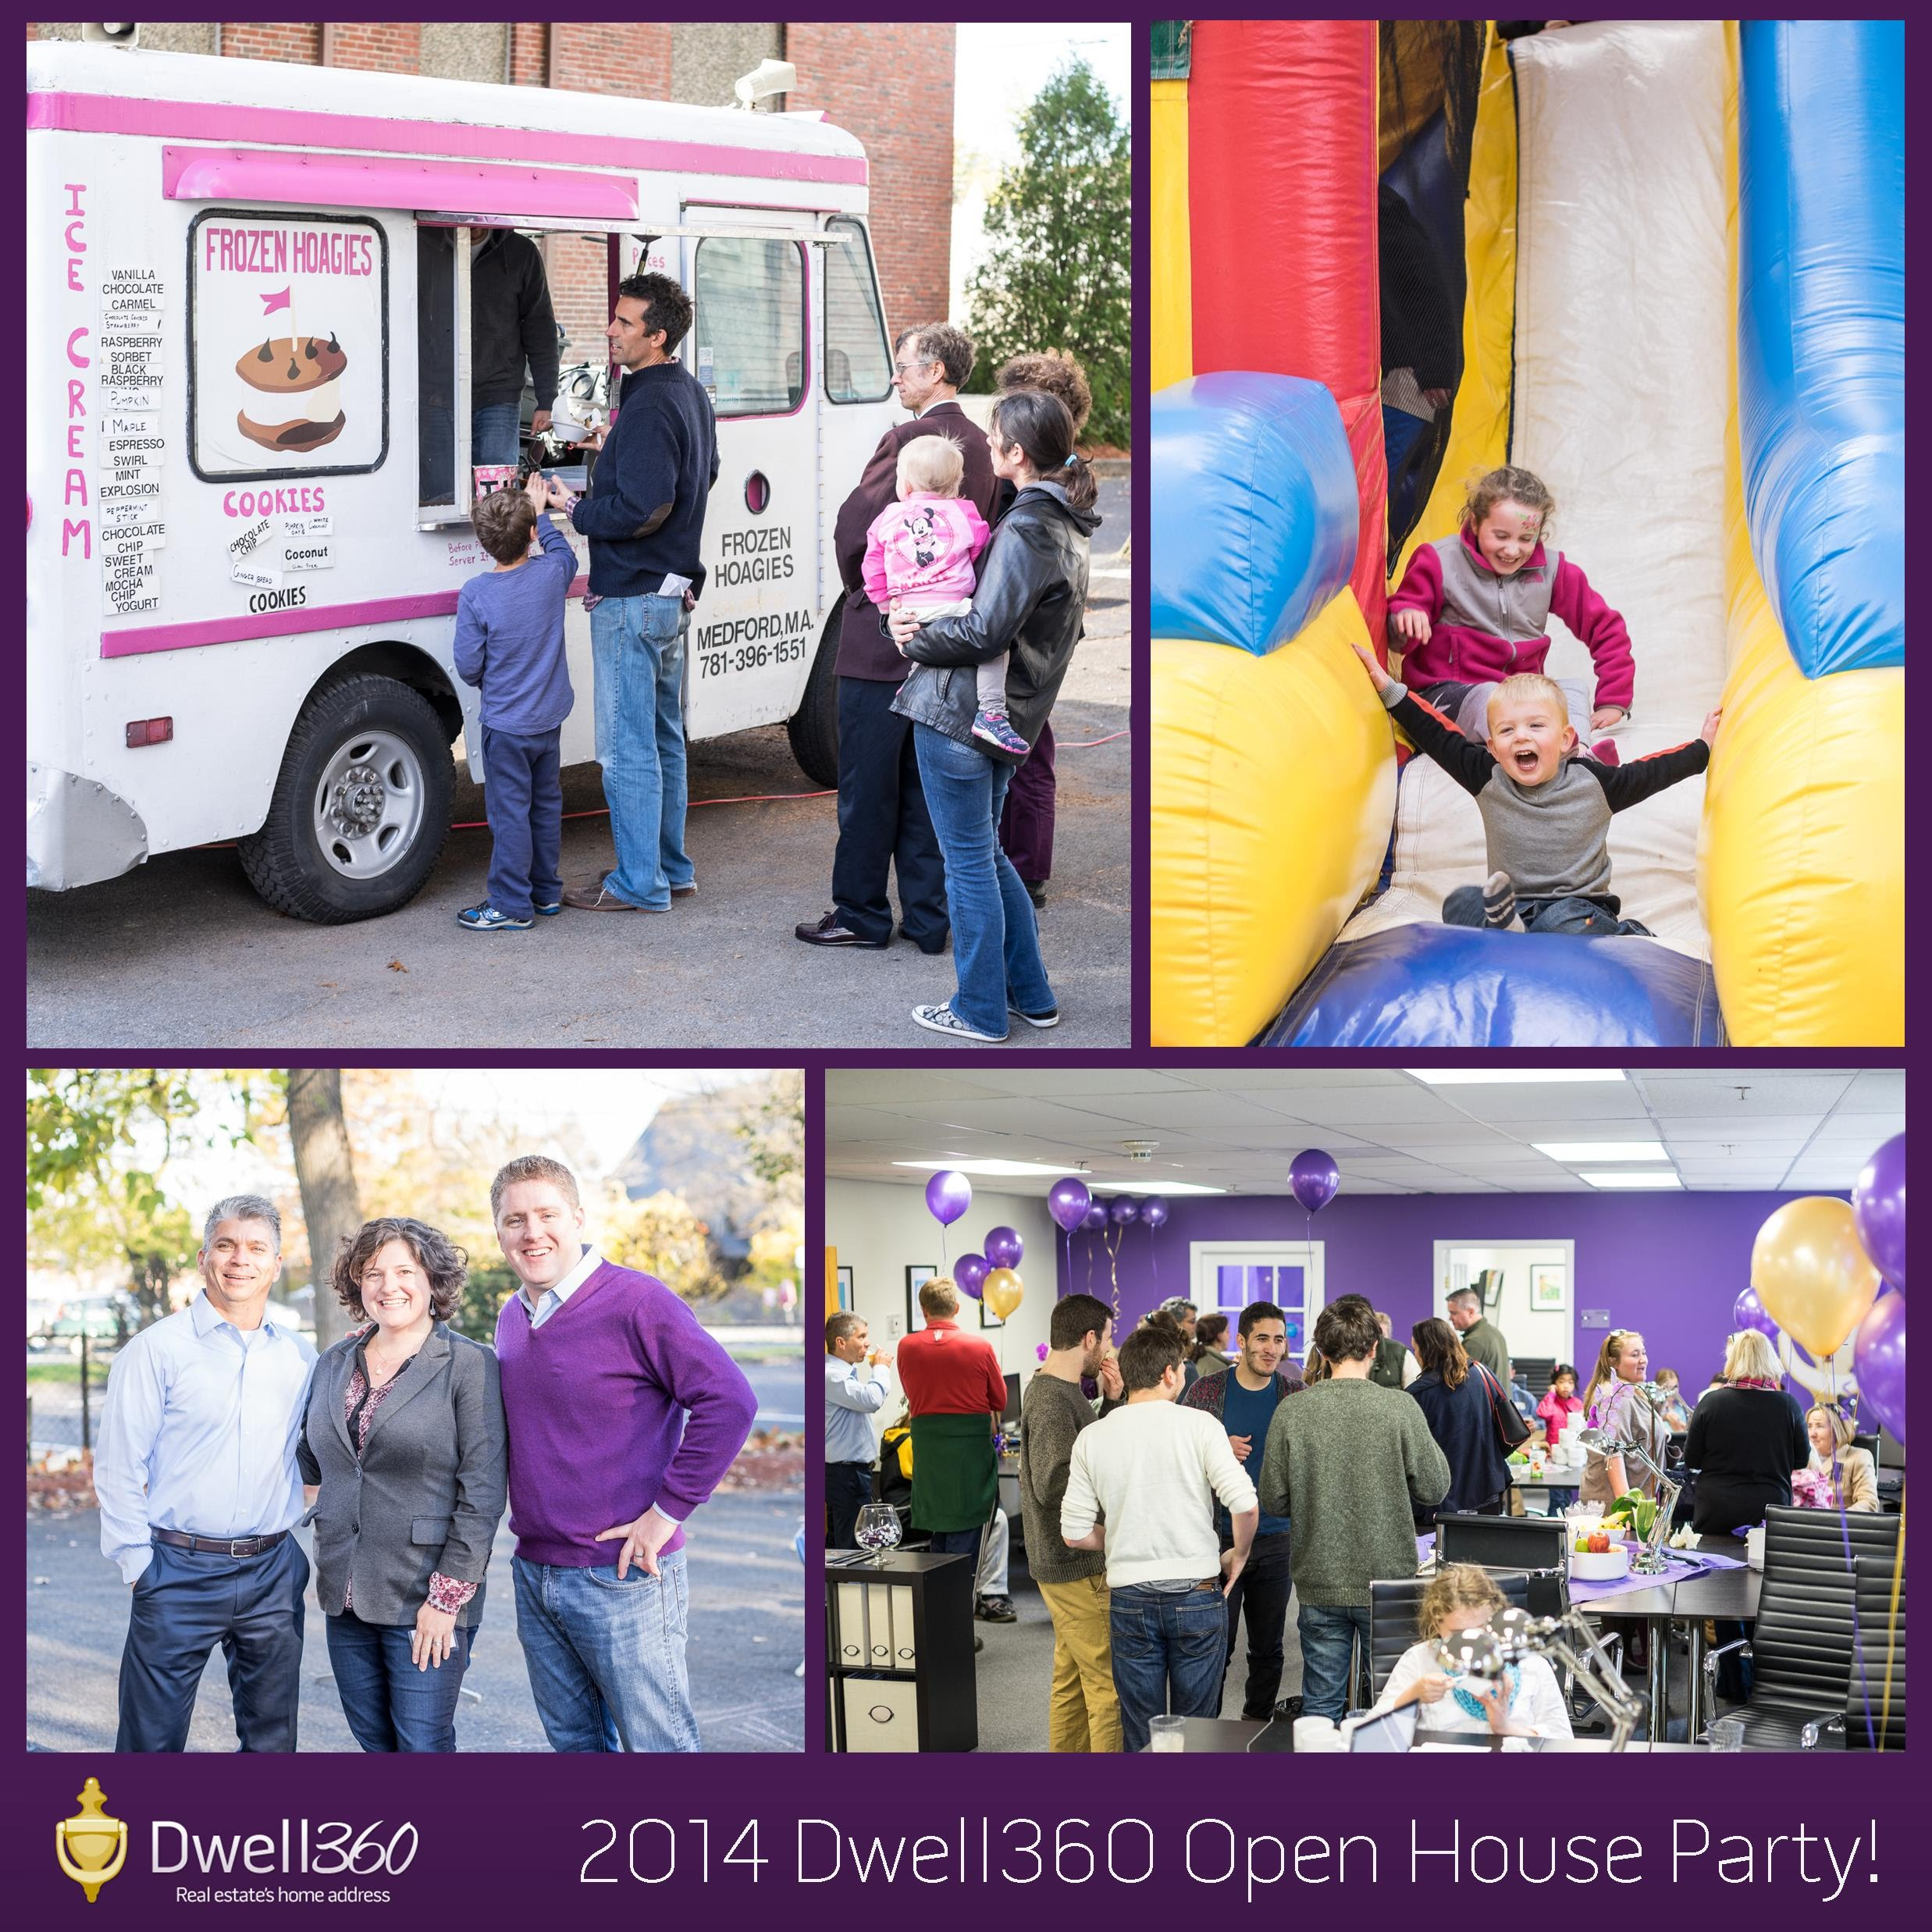 Dwell360 Real Estate's Big Annual Open House! 2014